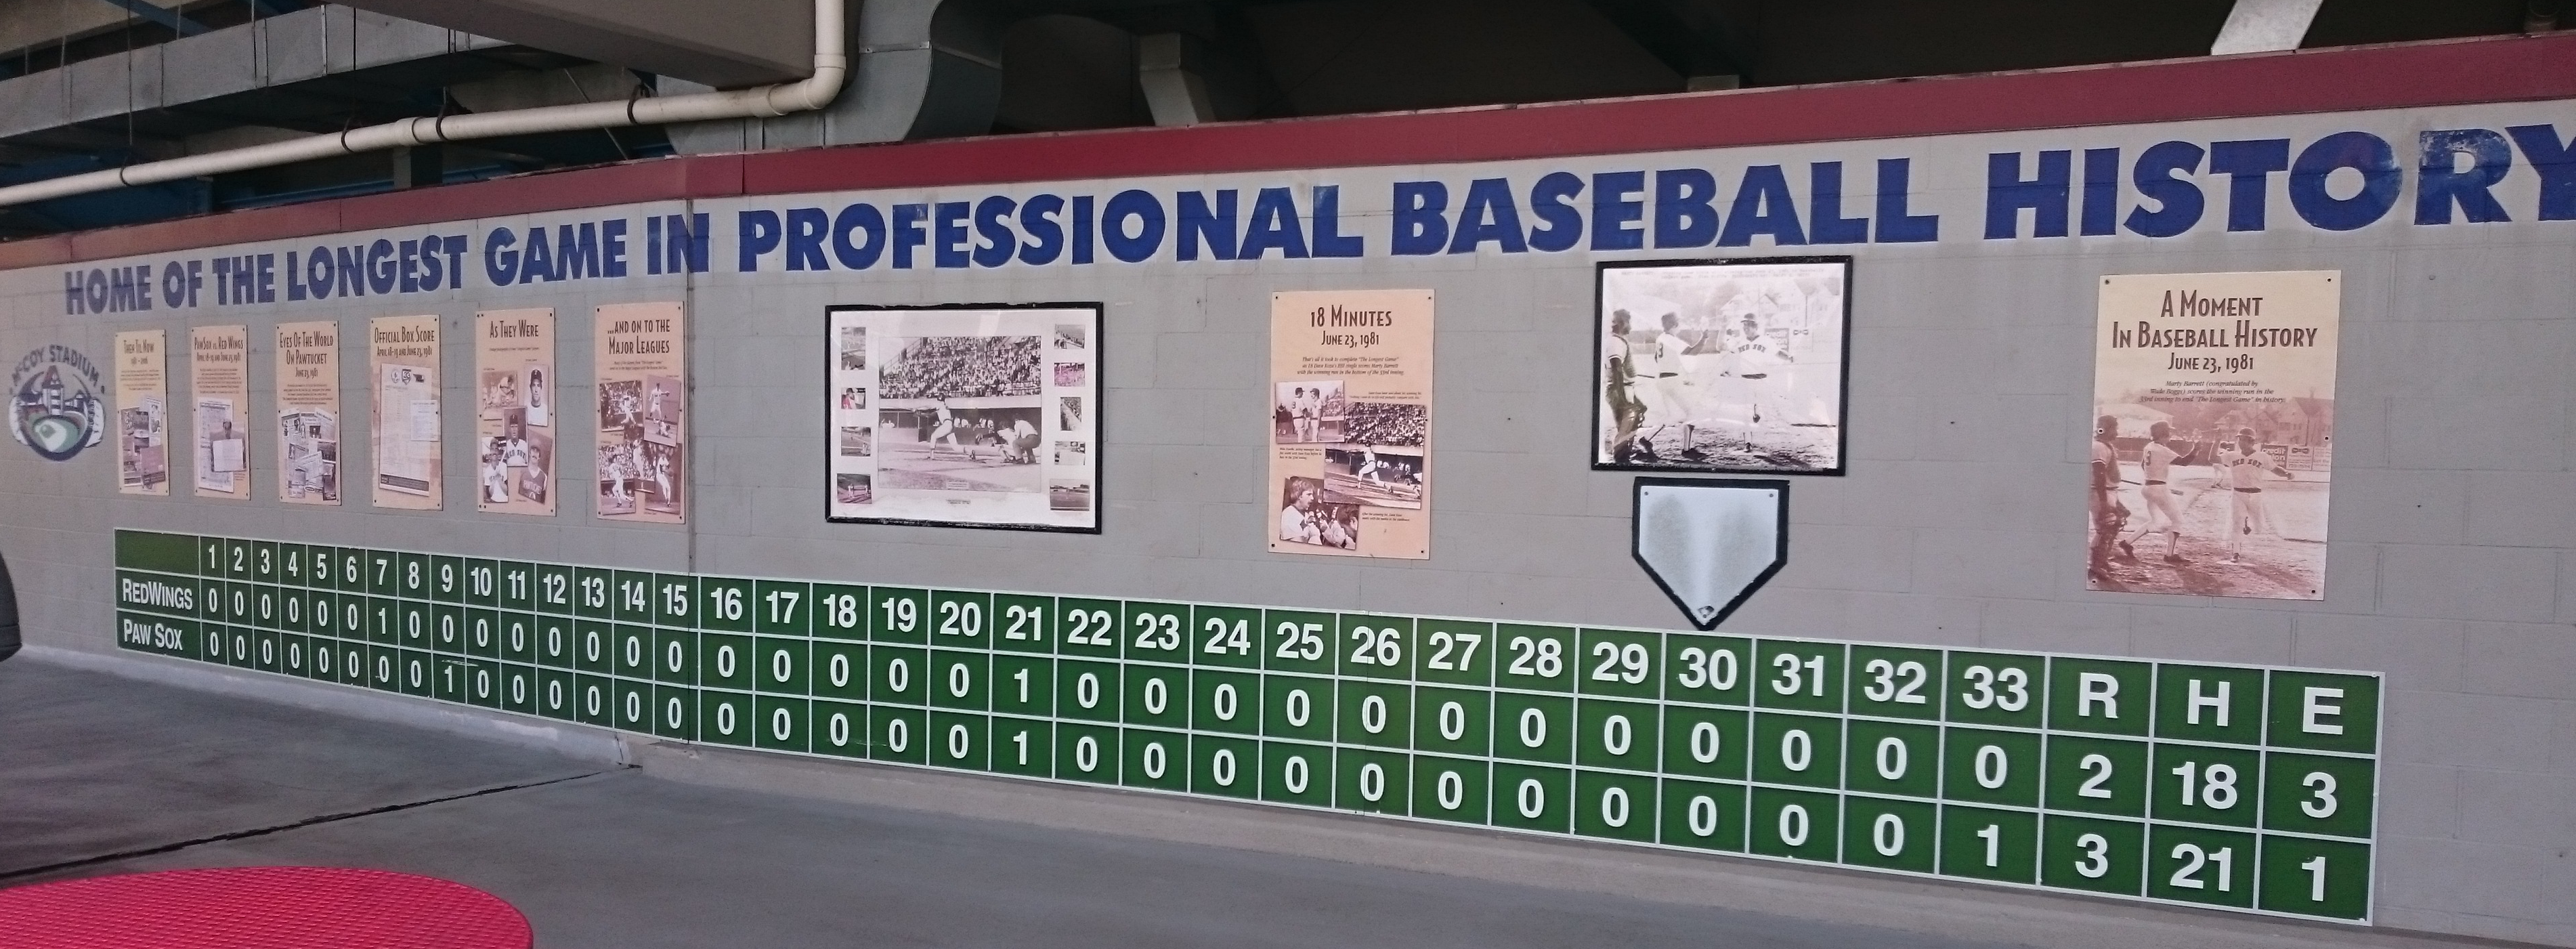 What Is The Highest Score Ever Recorded In A Baseball Game Professional Baseball Baseball Games Baseball